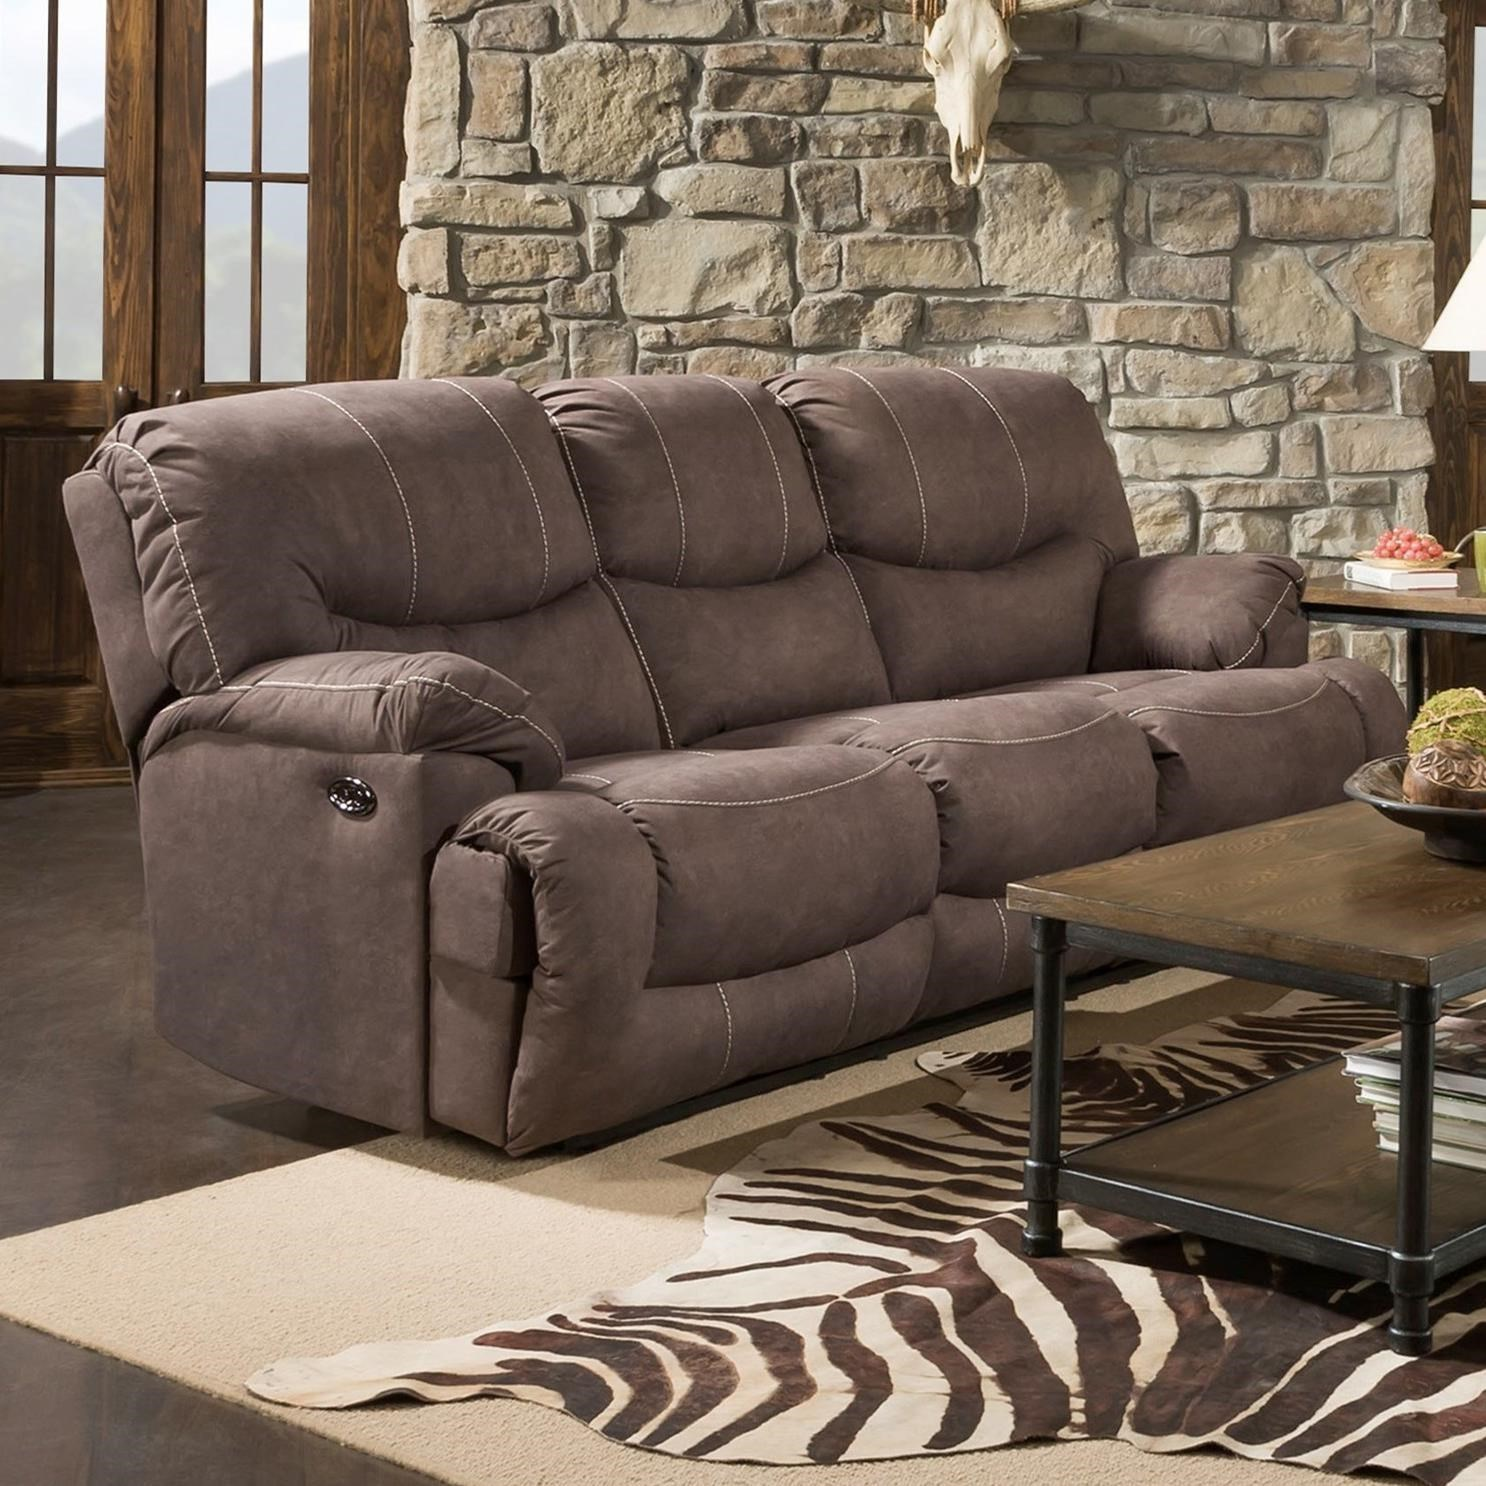 50455BR Double Power Reclining Sofa by United Furniture Industries at Bullard Furniture